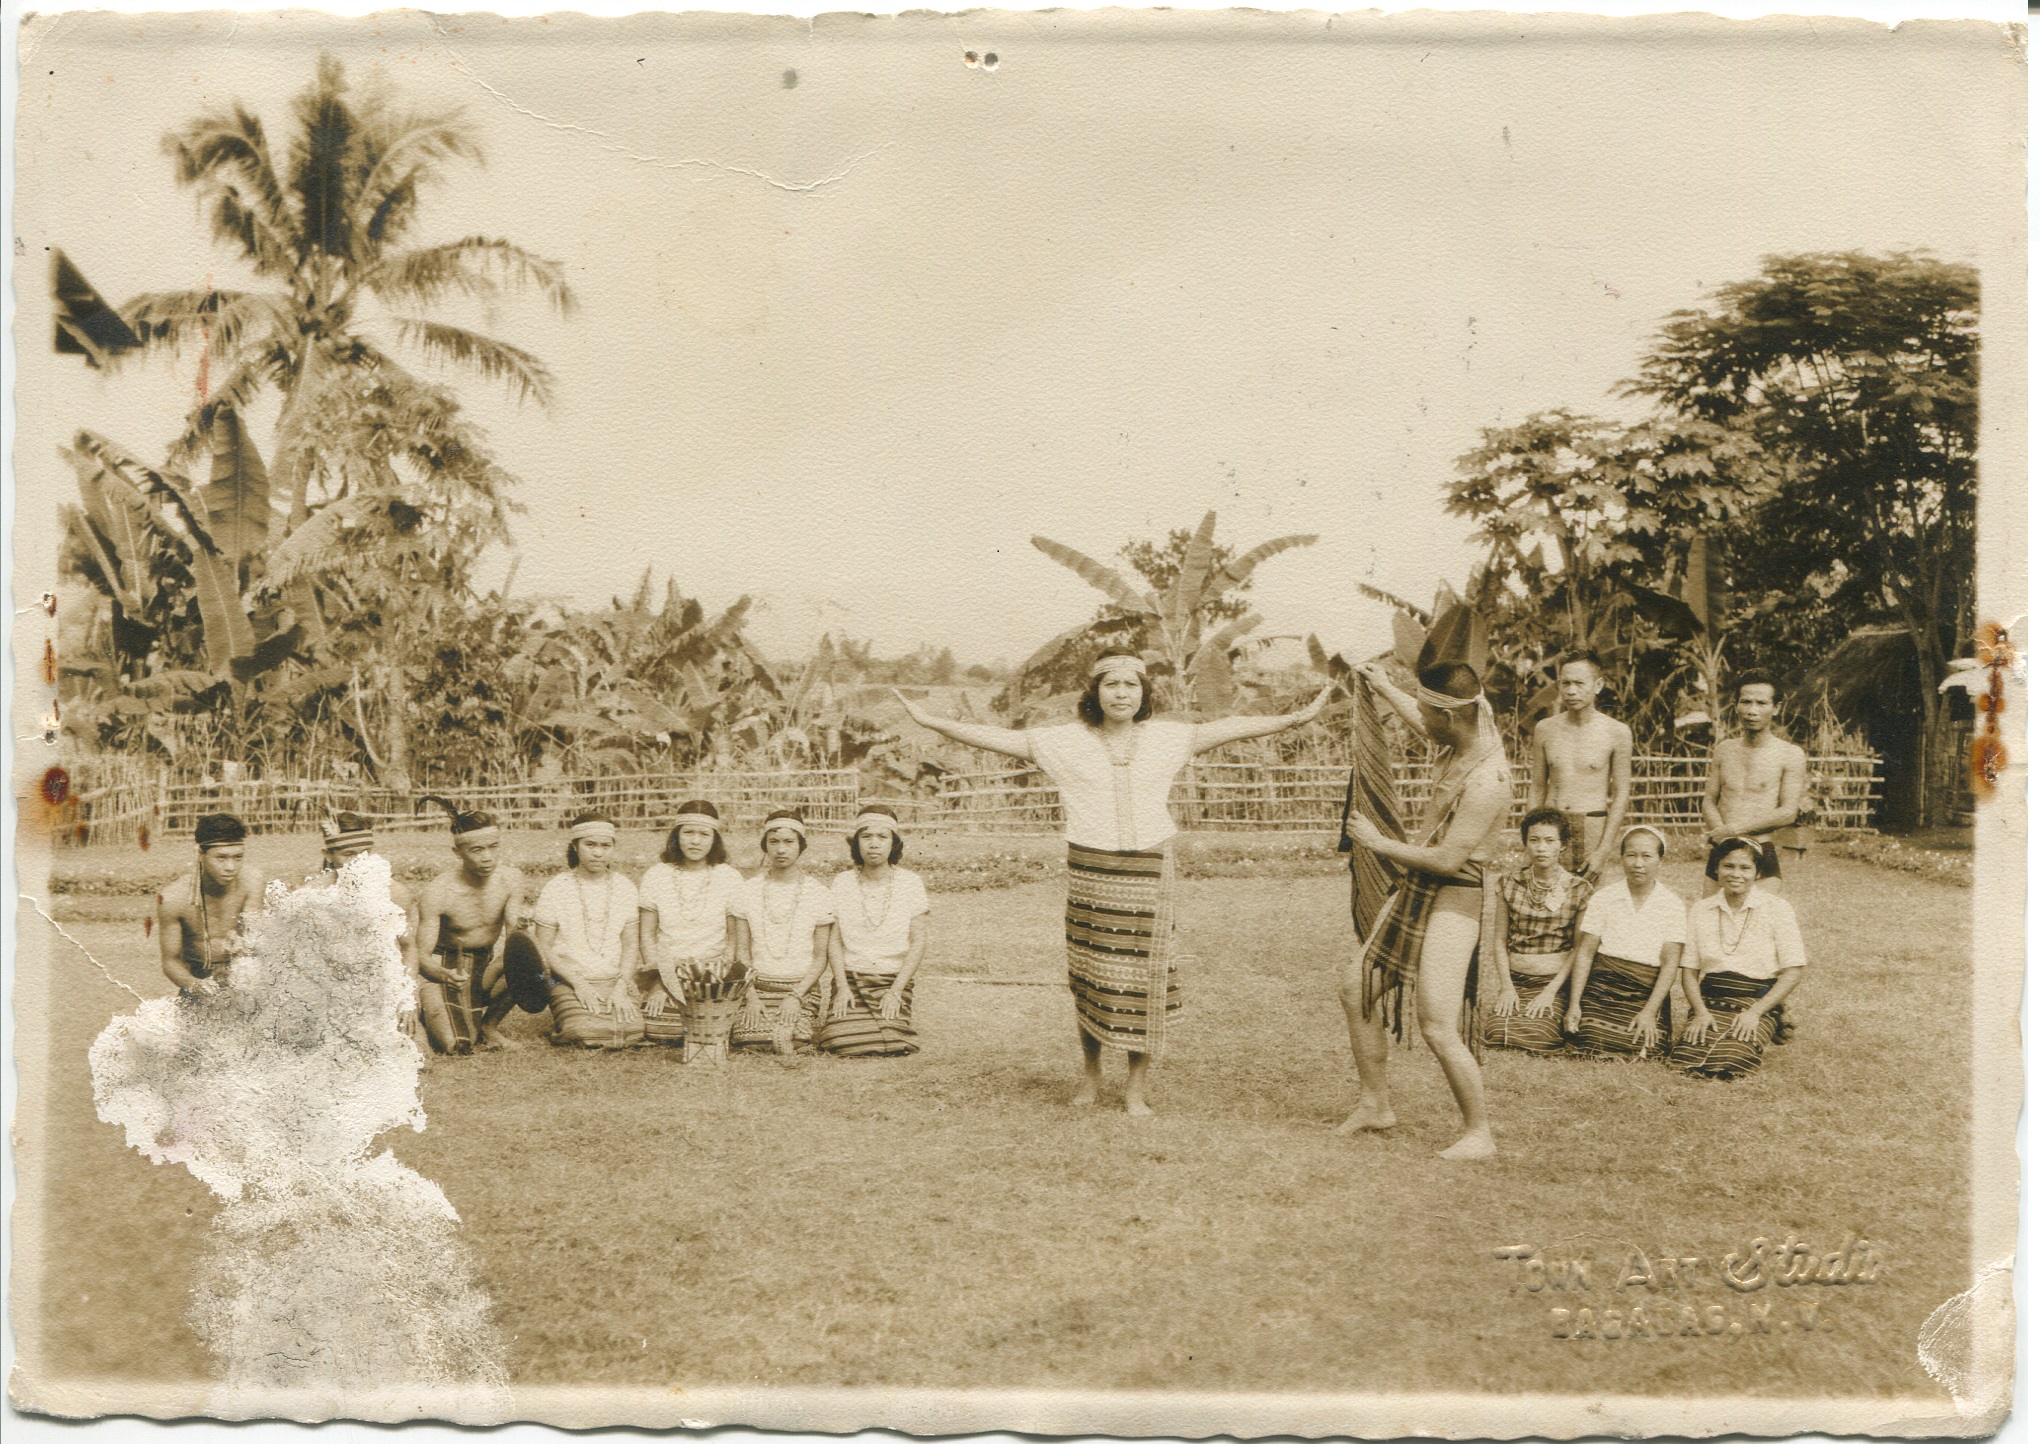 """Photo of man and woman dancing, surrounded by other seated dancers. This photograph was taken sometime before 1970 and acquired around 2000 from family, after grandmother passed away. Made in Bagabag, Nueva Vizcaya, Luzon. A woman and man are pictured dancing, surrounded by other people kneeling to watch them dance or take part in the dance. Embossed Text: """"Bagabag NV, Town Air Studio"""". Reminds Surla of family, grandmother's pride in her hometown, shows strength and presence.   Any views, findings, conclusions, or recommendations expressed in this story do not necessarily represent those of the National Endowment for the Humanities. [Copyright] Field Museum of Natural History - CC BY-NC"""